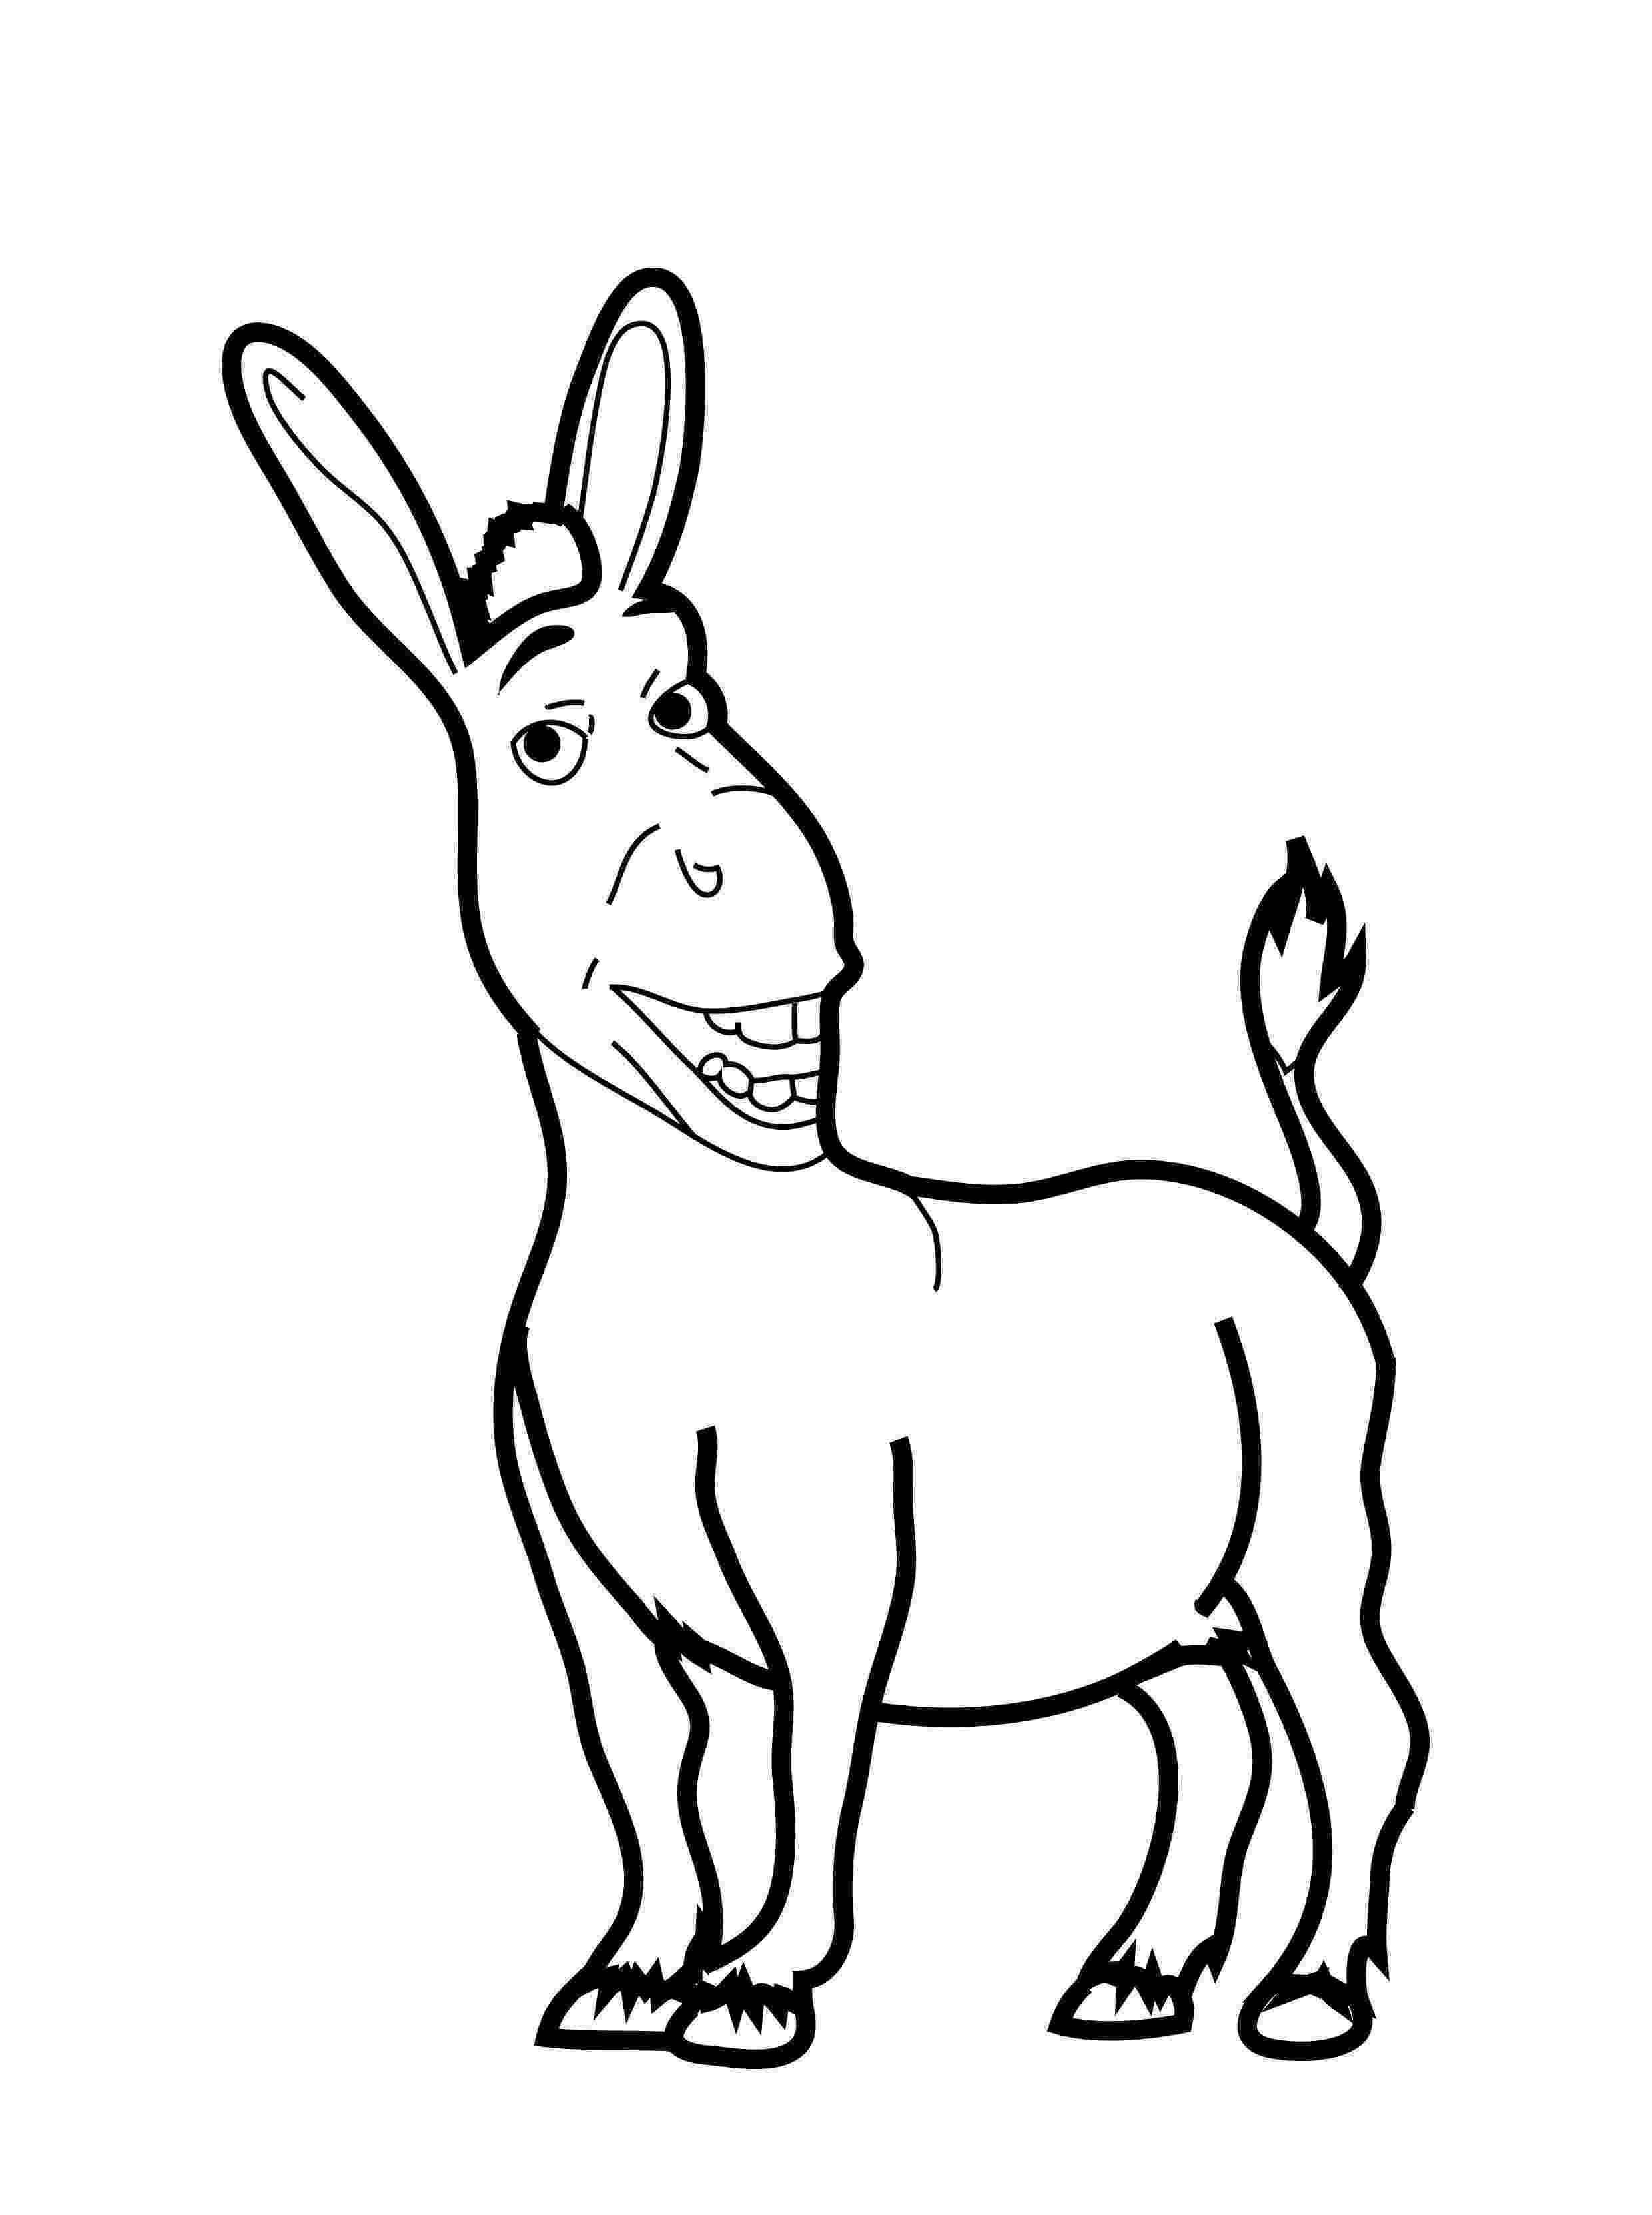 coloring pages donkey donkey coloring pages coloring pages donkey